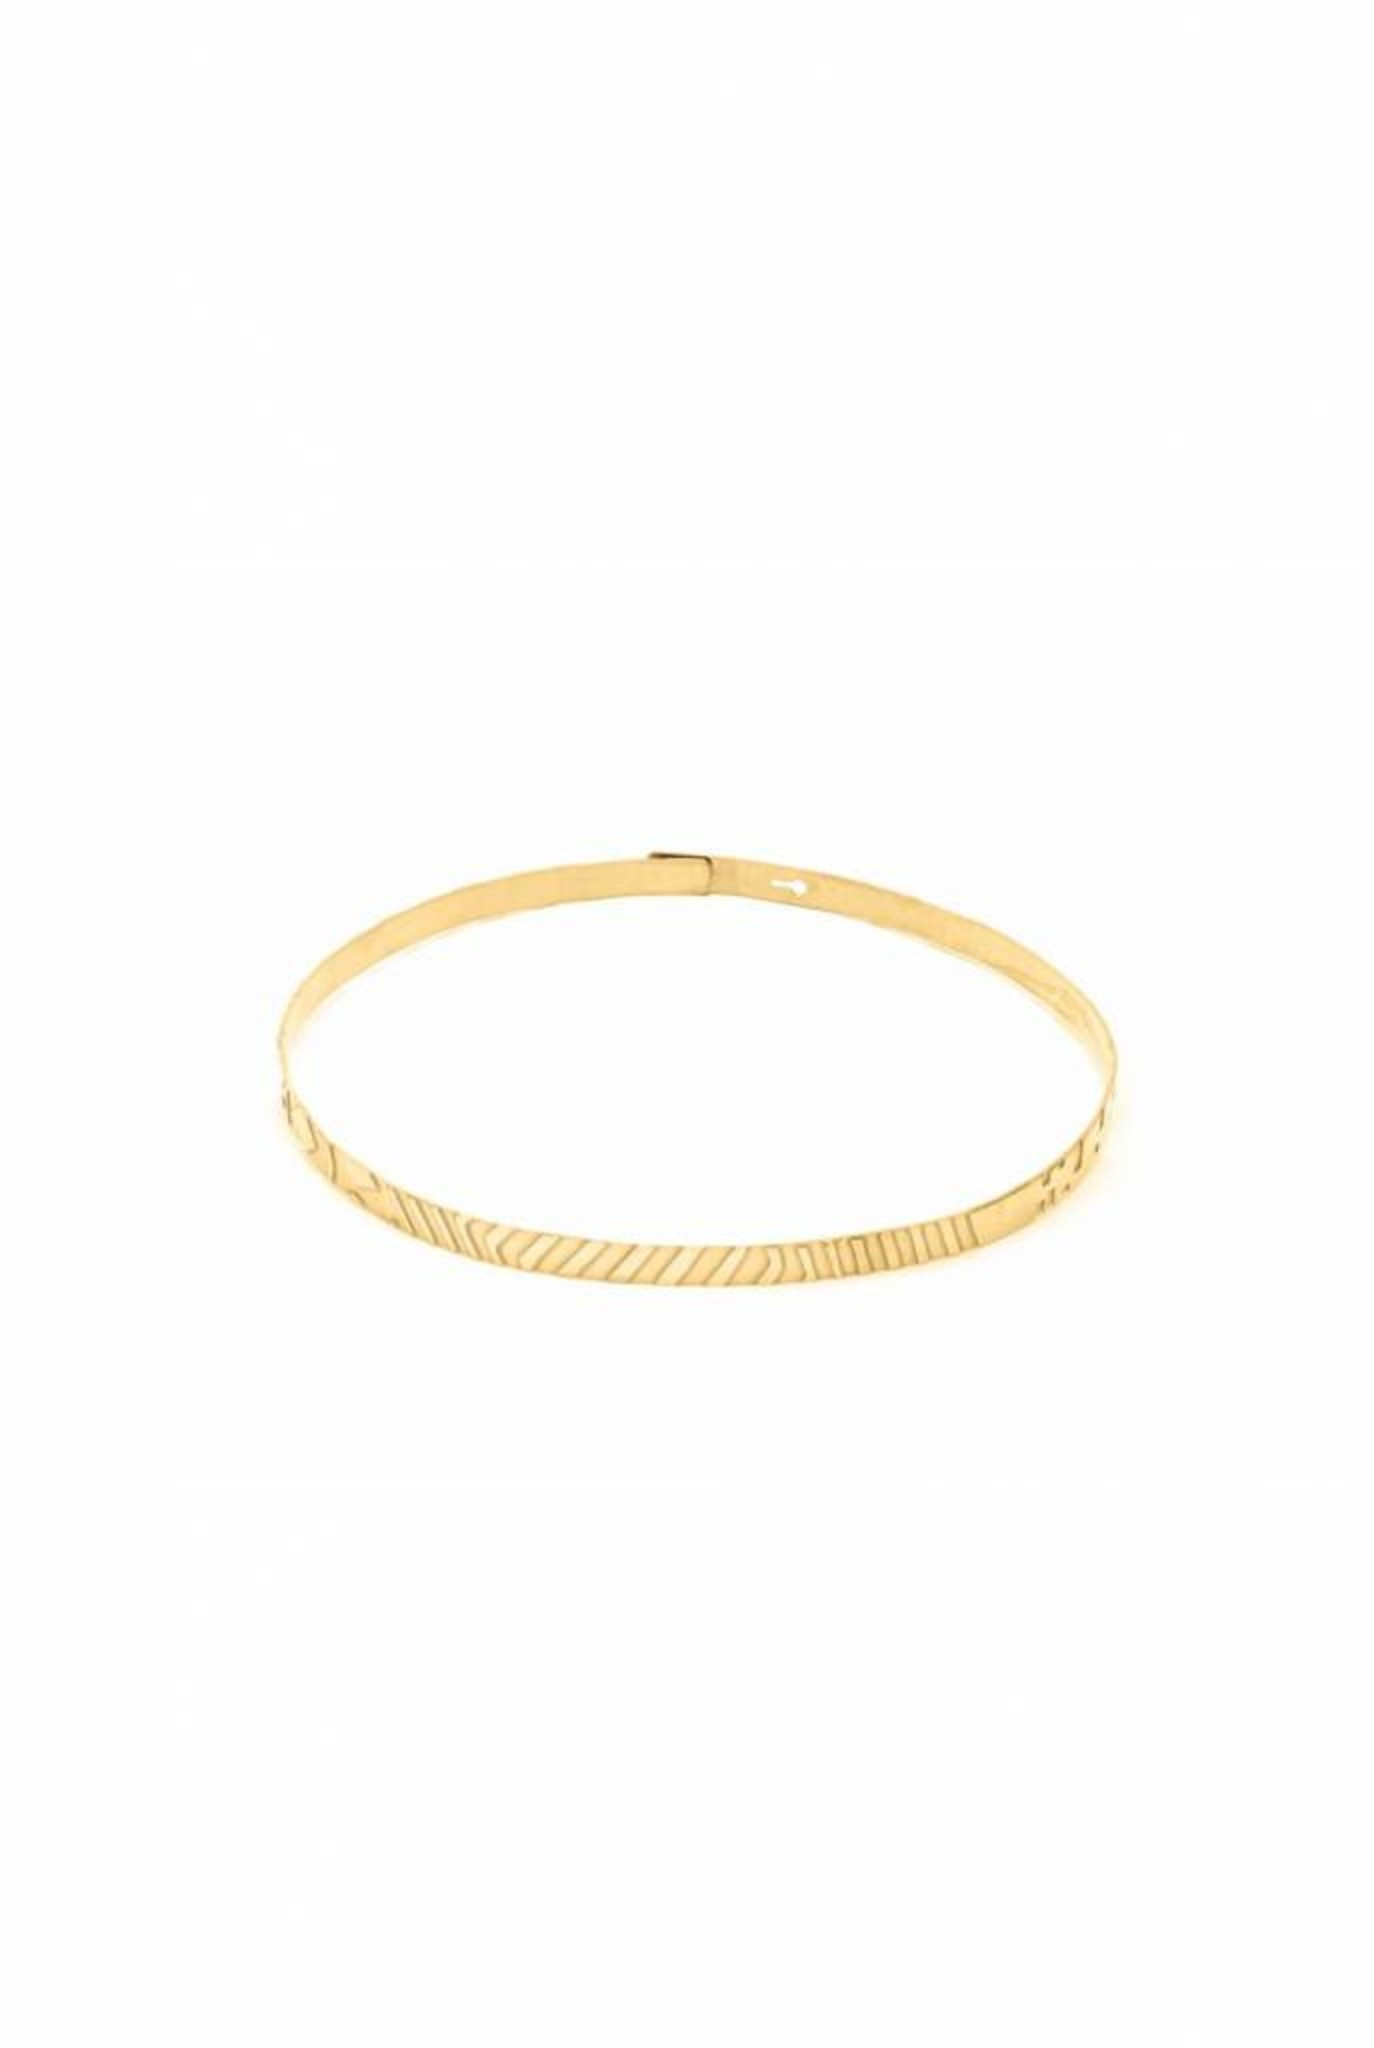 graphic elements choker necklace gold plated